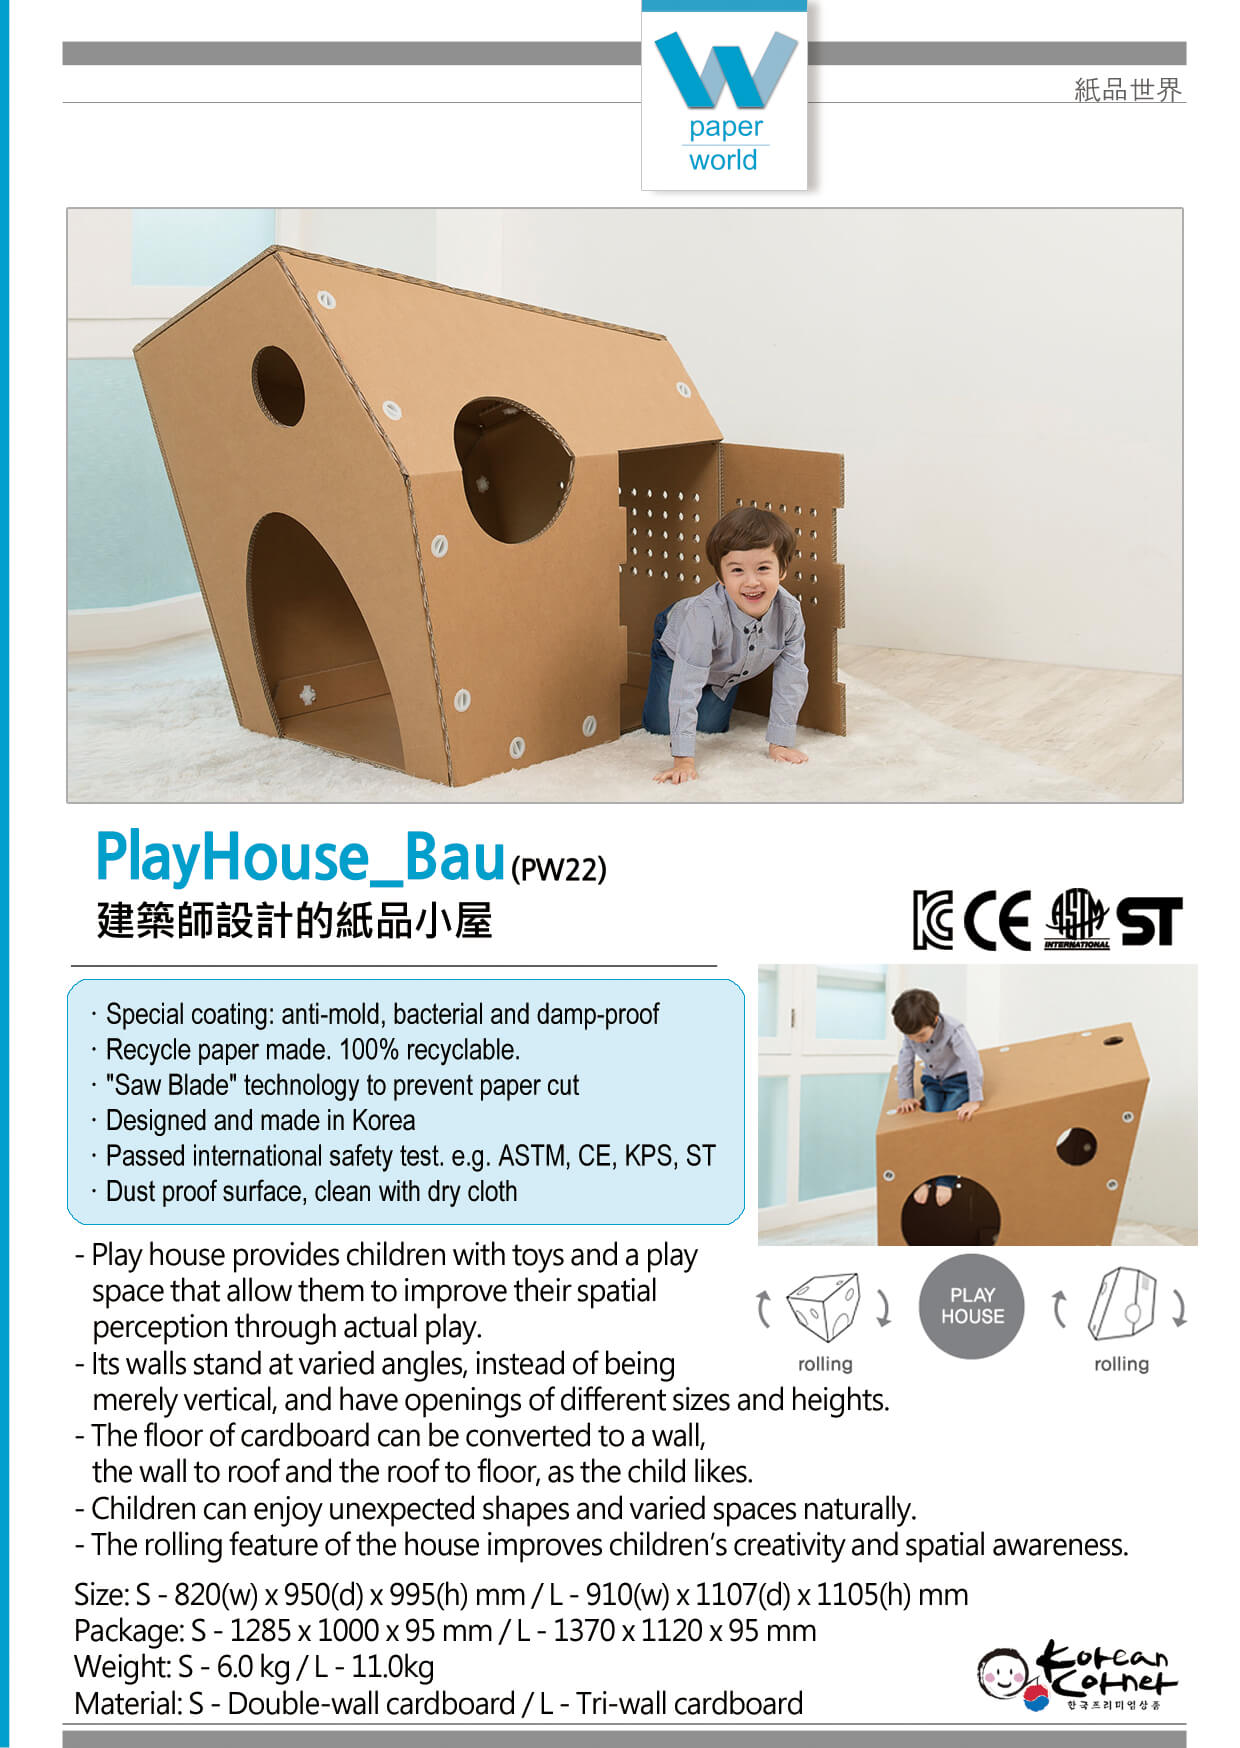 PlayHouse Bau